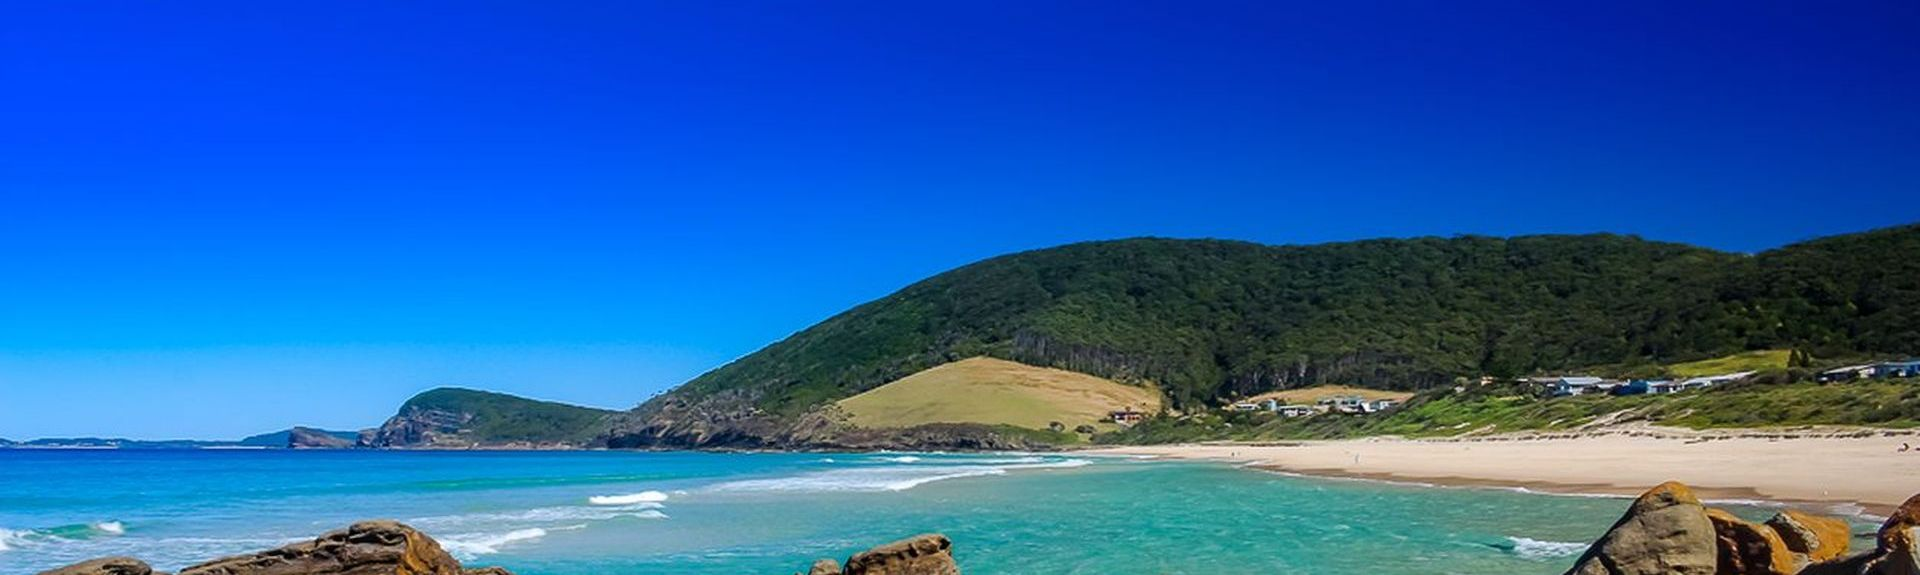 Black Head Beach, NSW, Australia